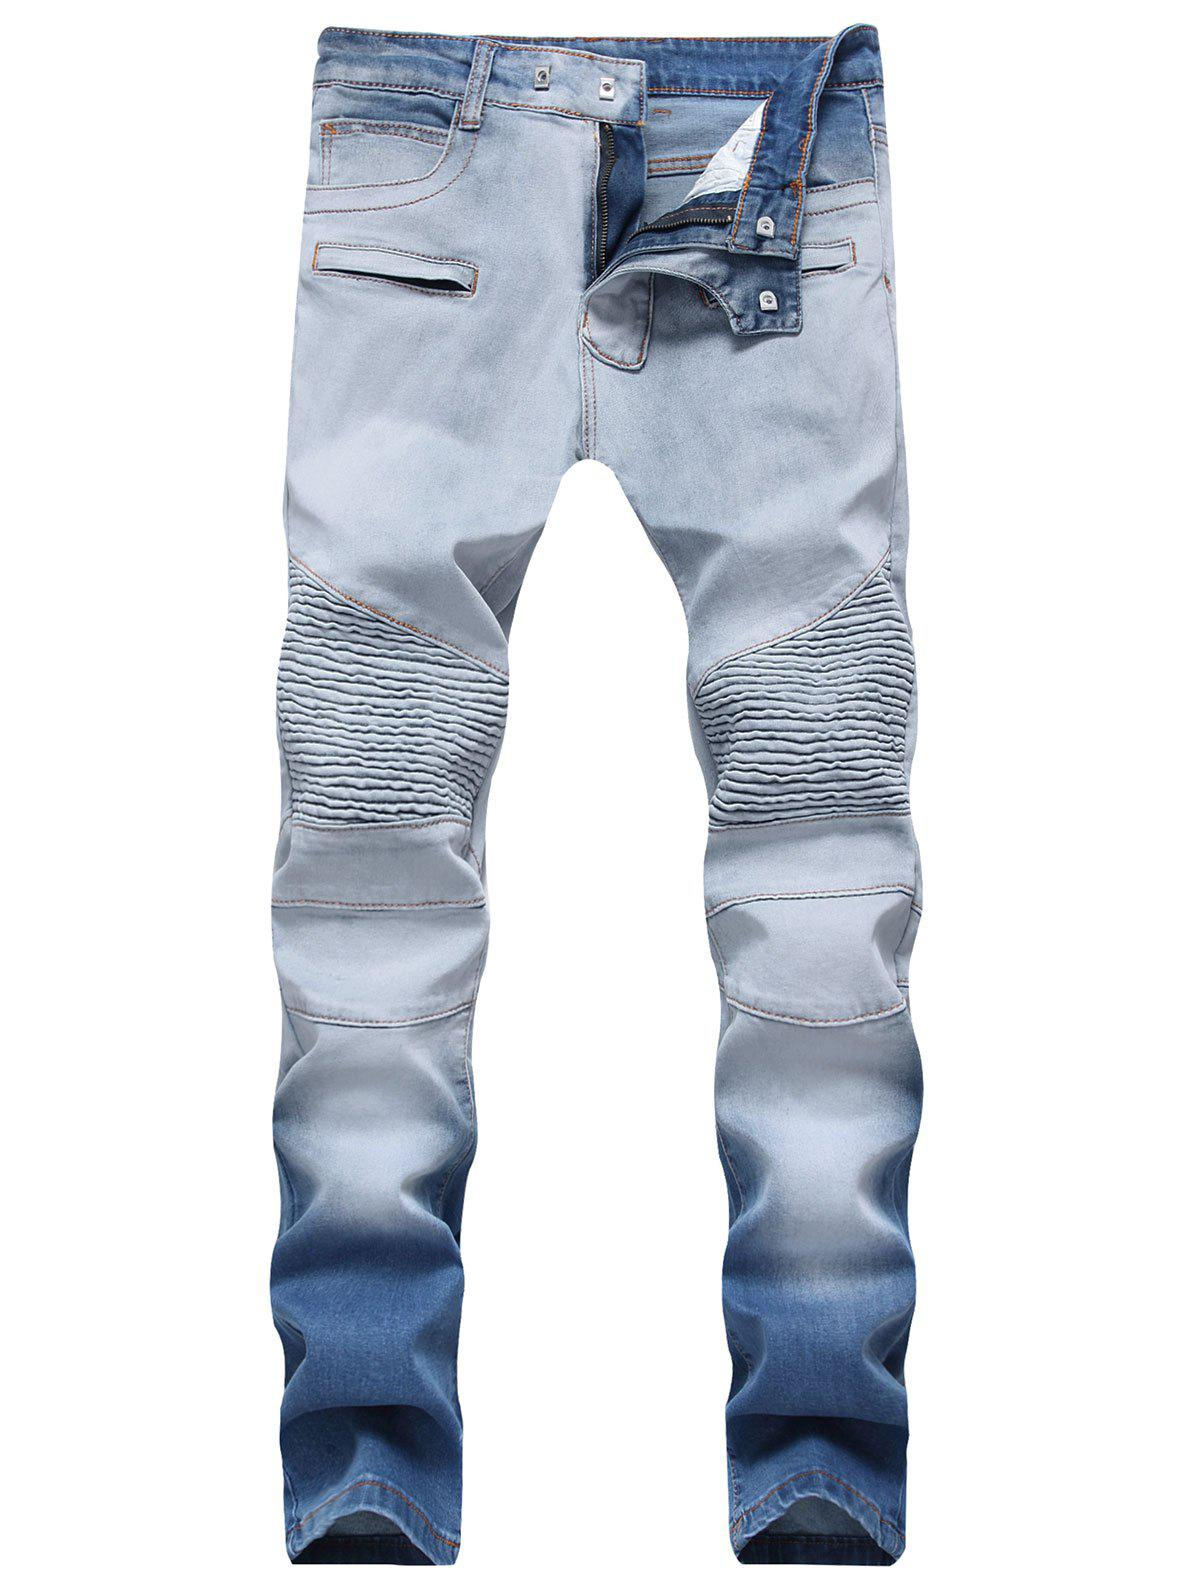 Hook Button Straight Leg Distressed Biker Jeans - JEANS BLUE 36